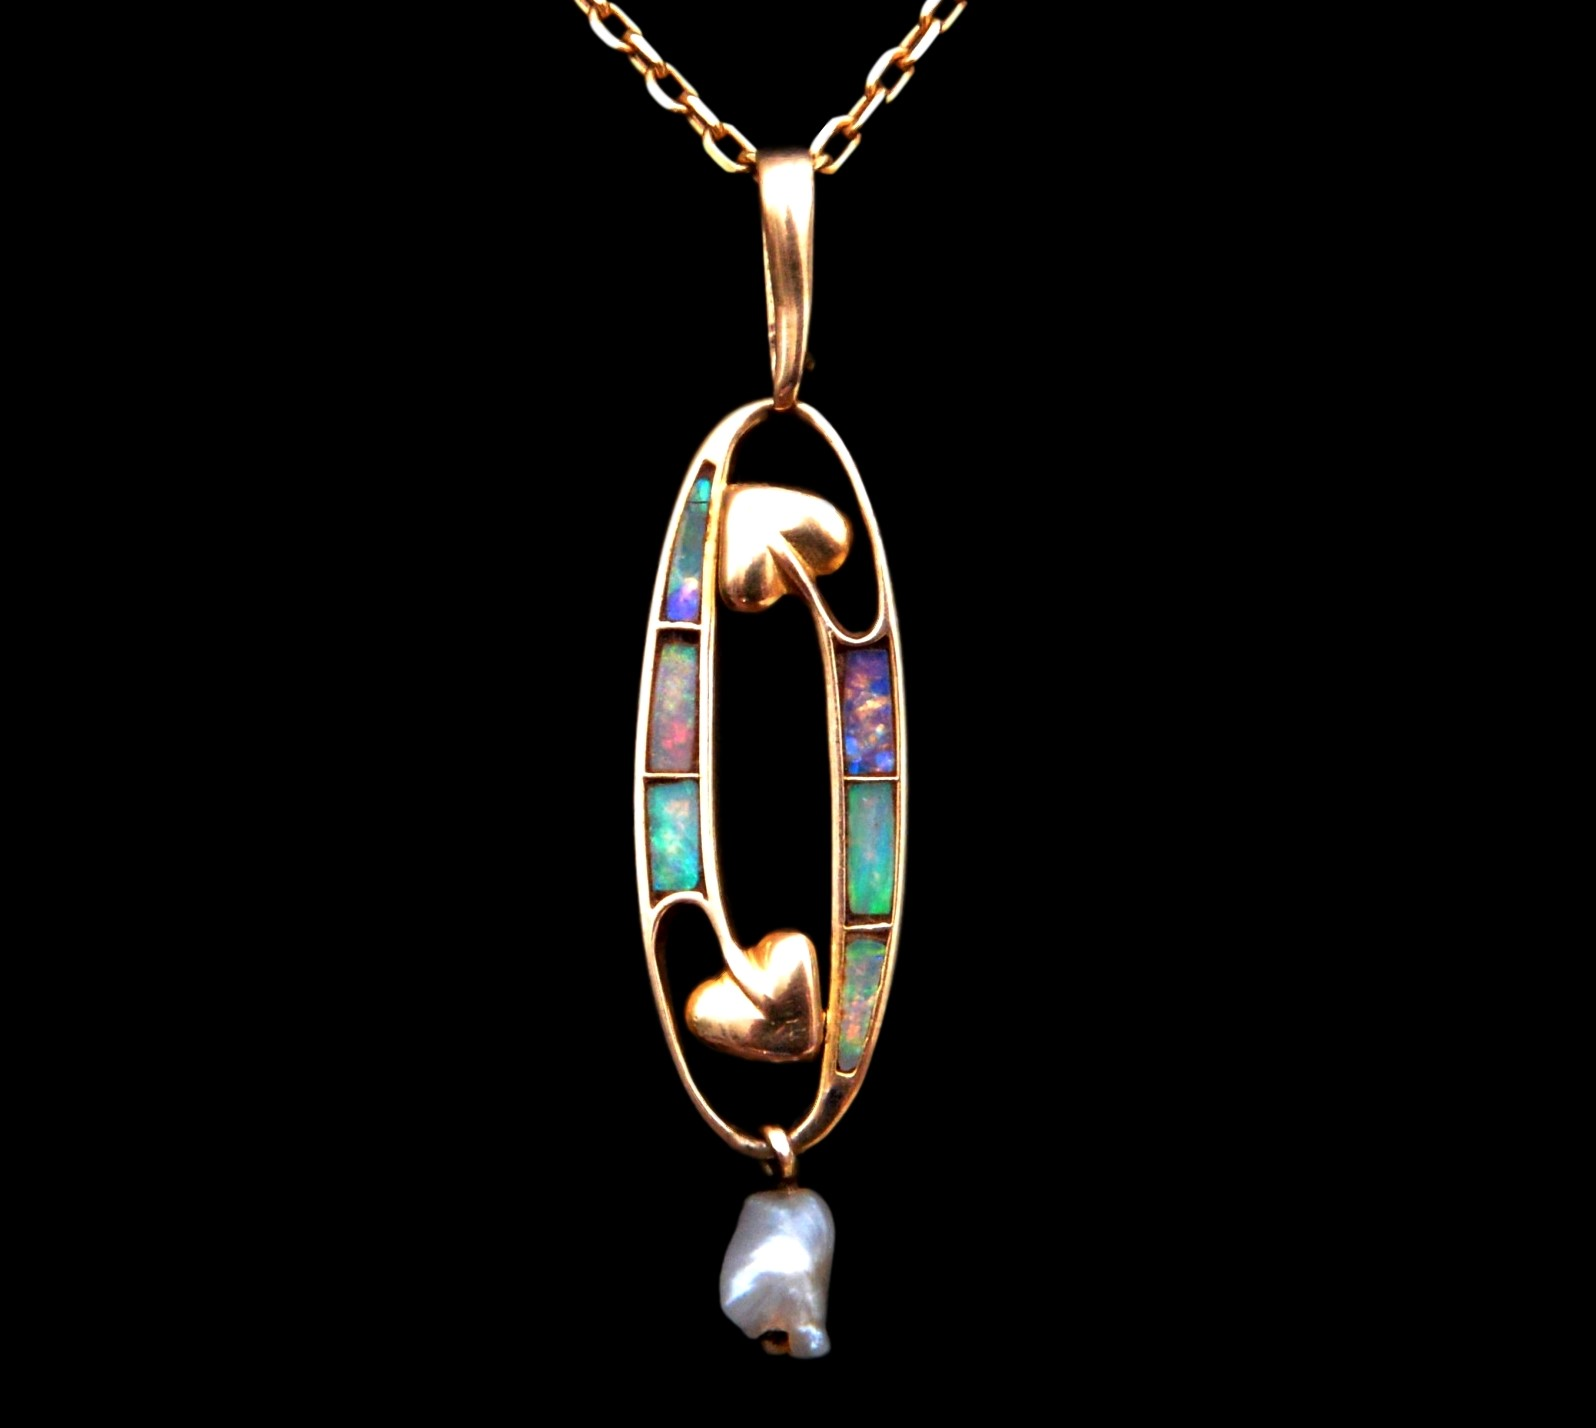 archibald knox jewellery, liberty gold pendant